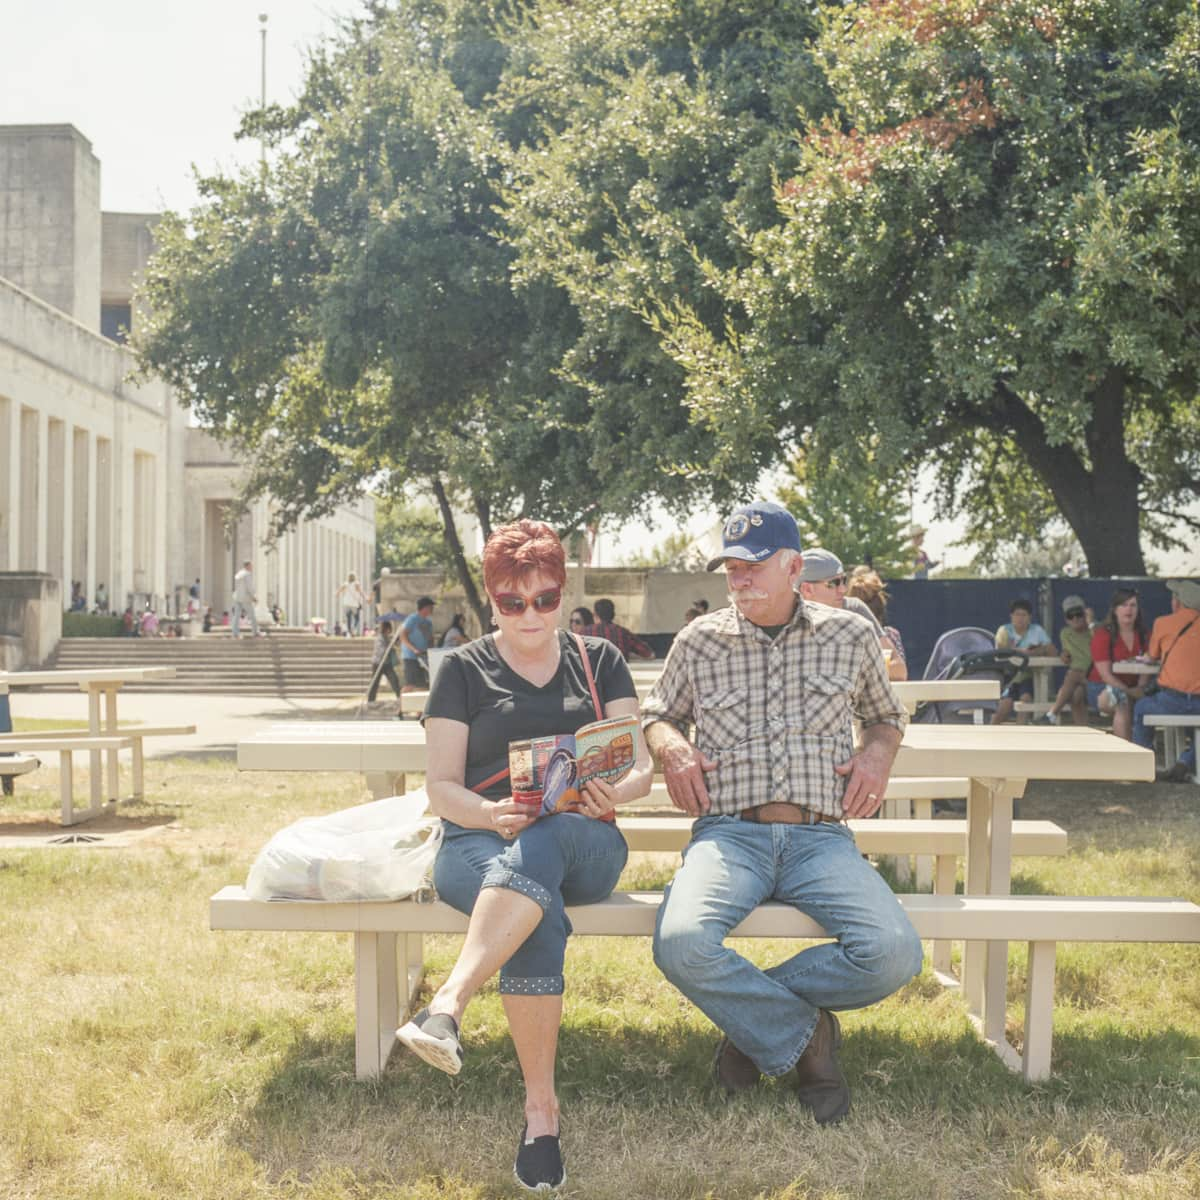 A couple at the State Fair of Texas on Medium Format Film